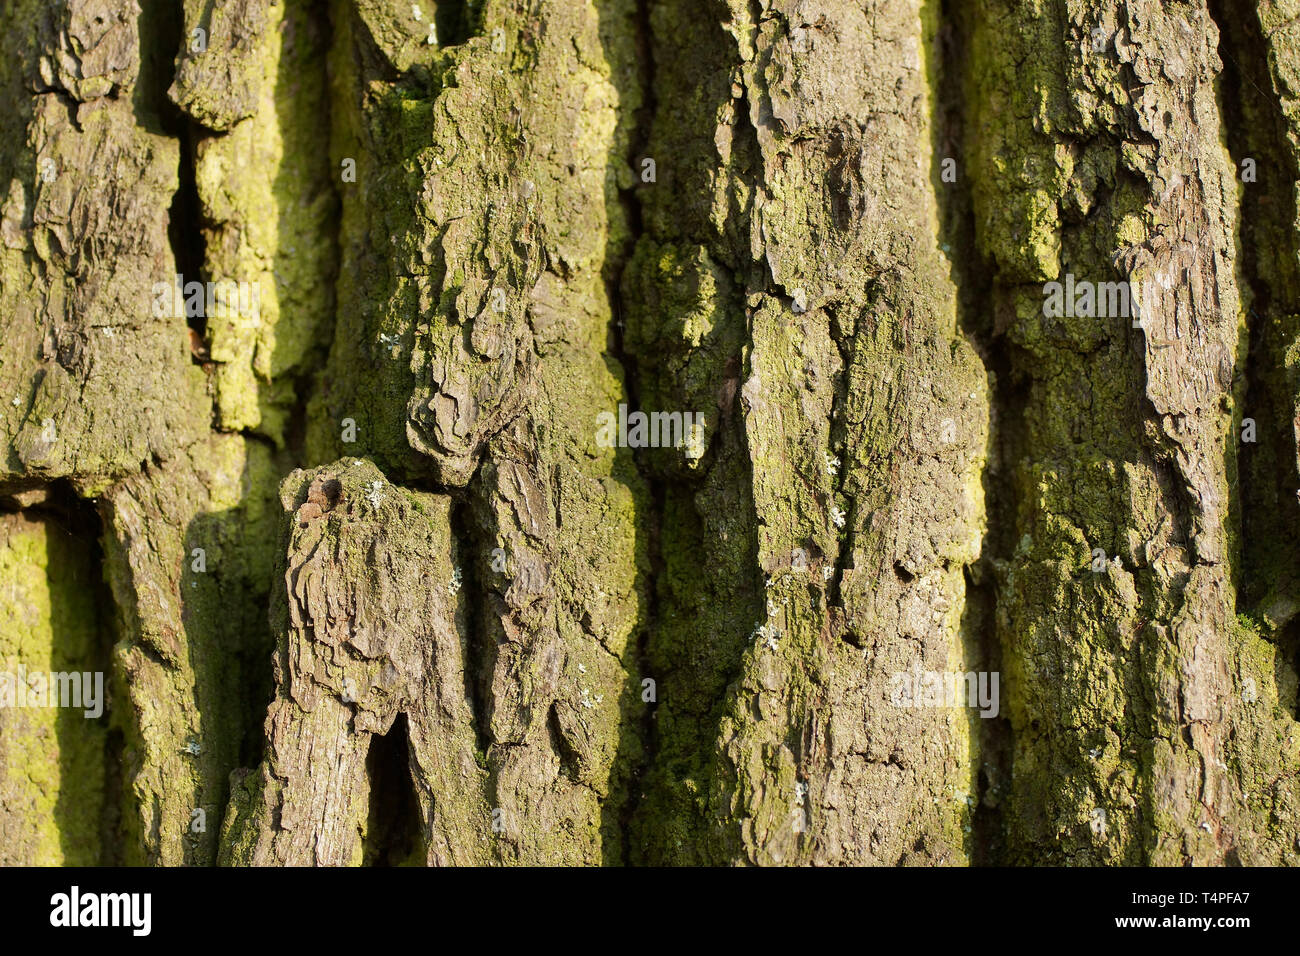 bark of a tree - Stock Image